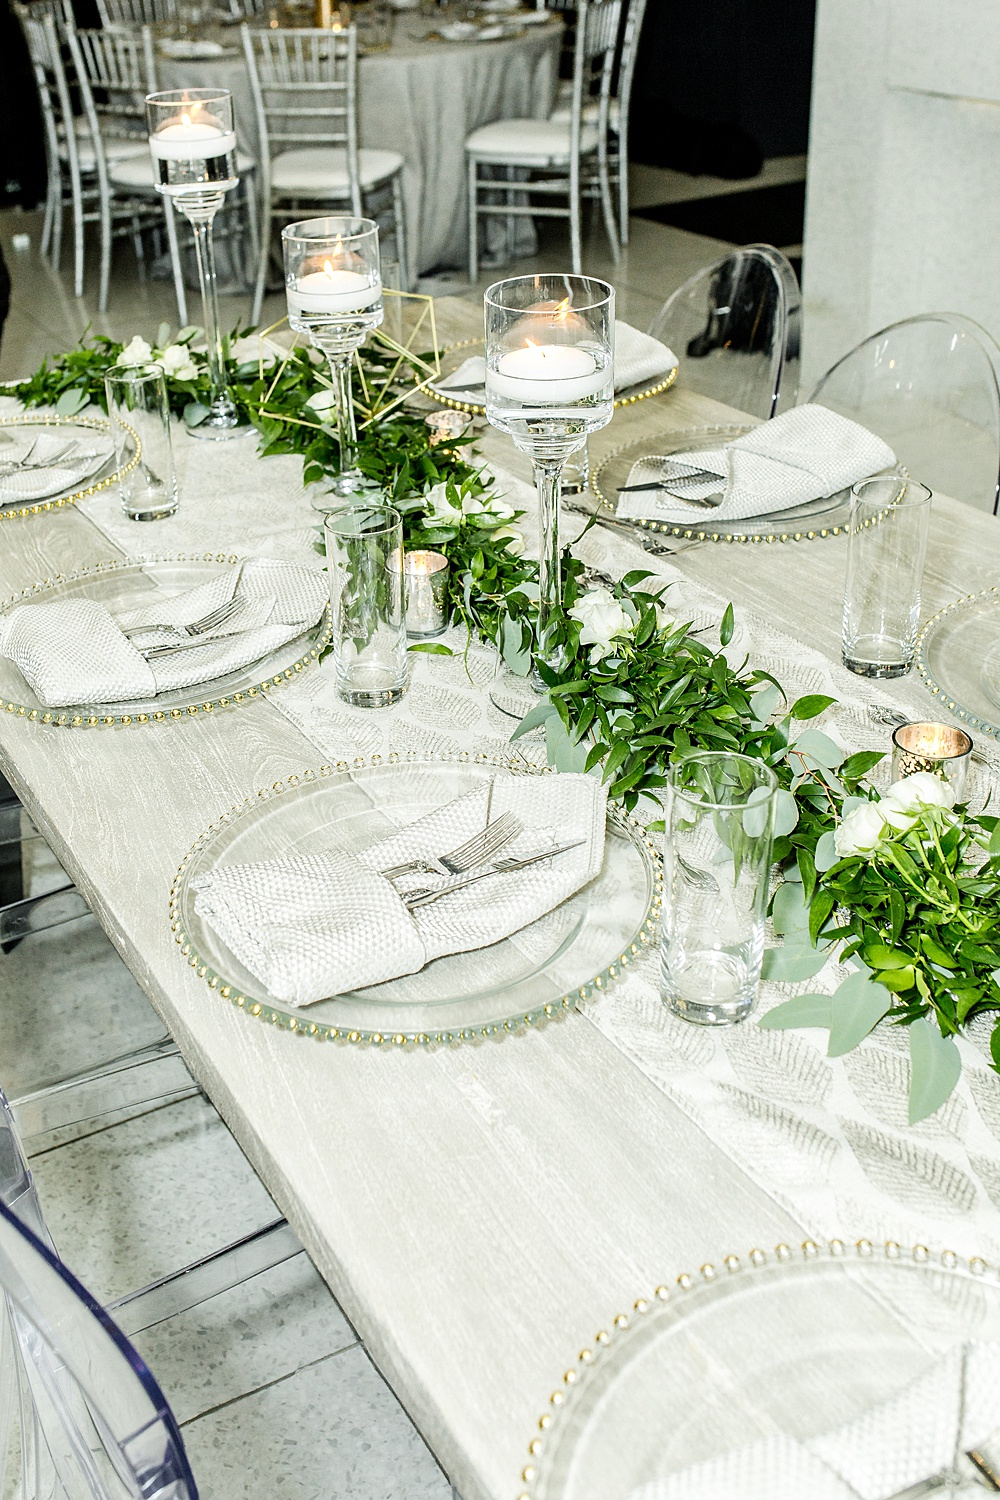 La Vie Wedding Reception in Washington, DC, Event Planning by Bright Occasions, Photography by Iris Mannings